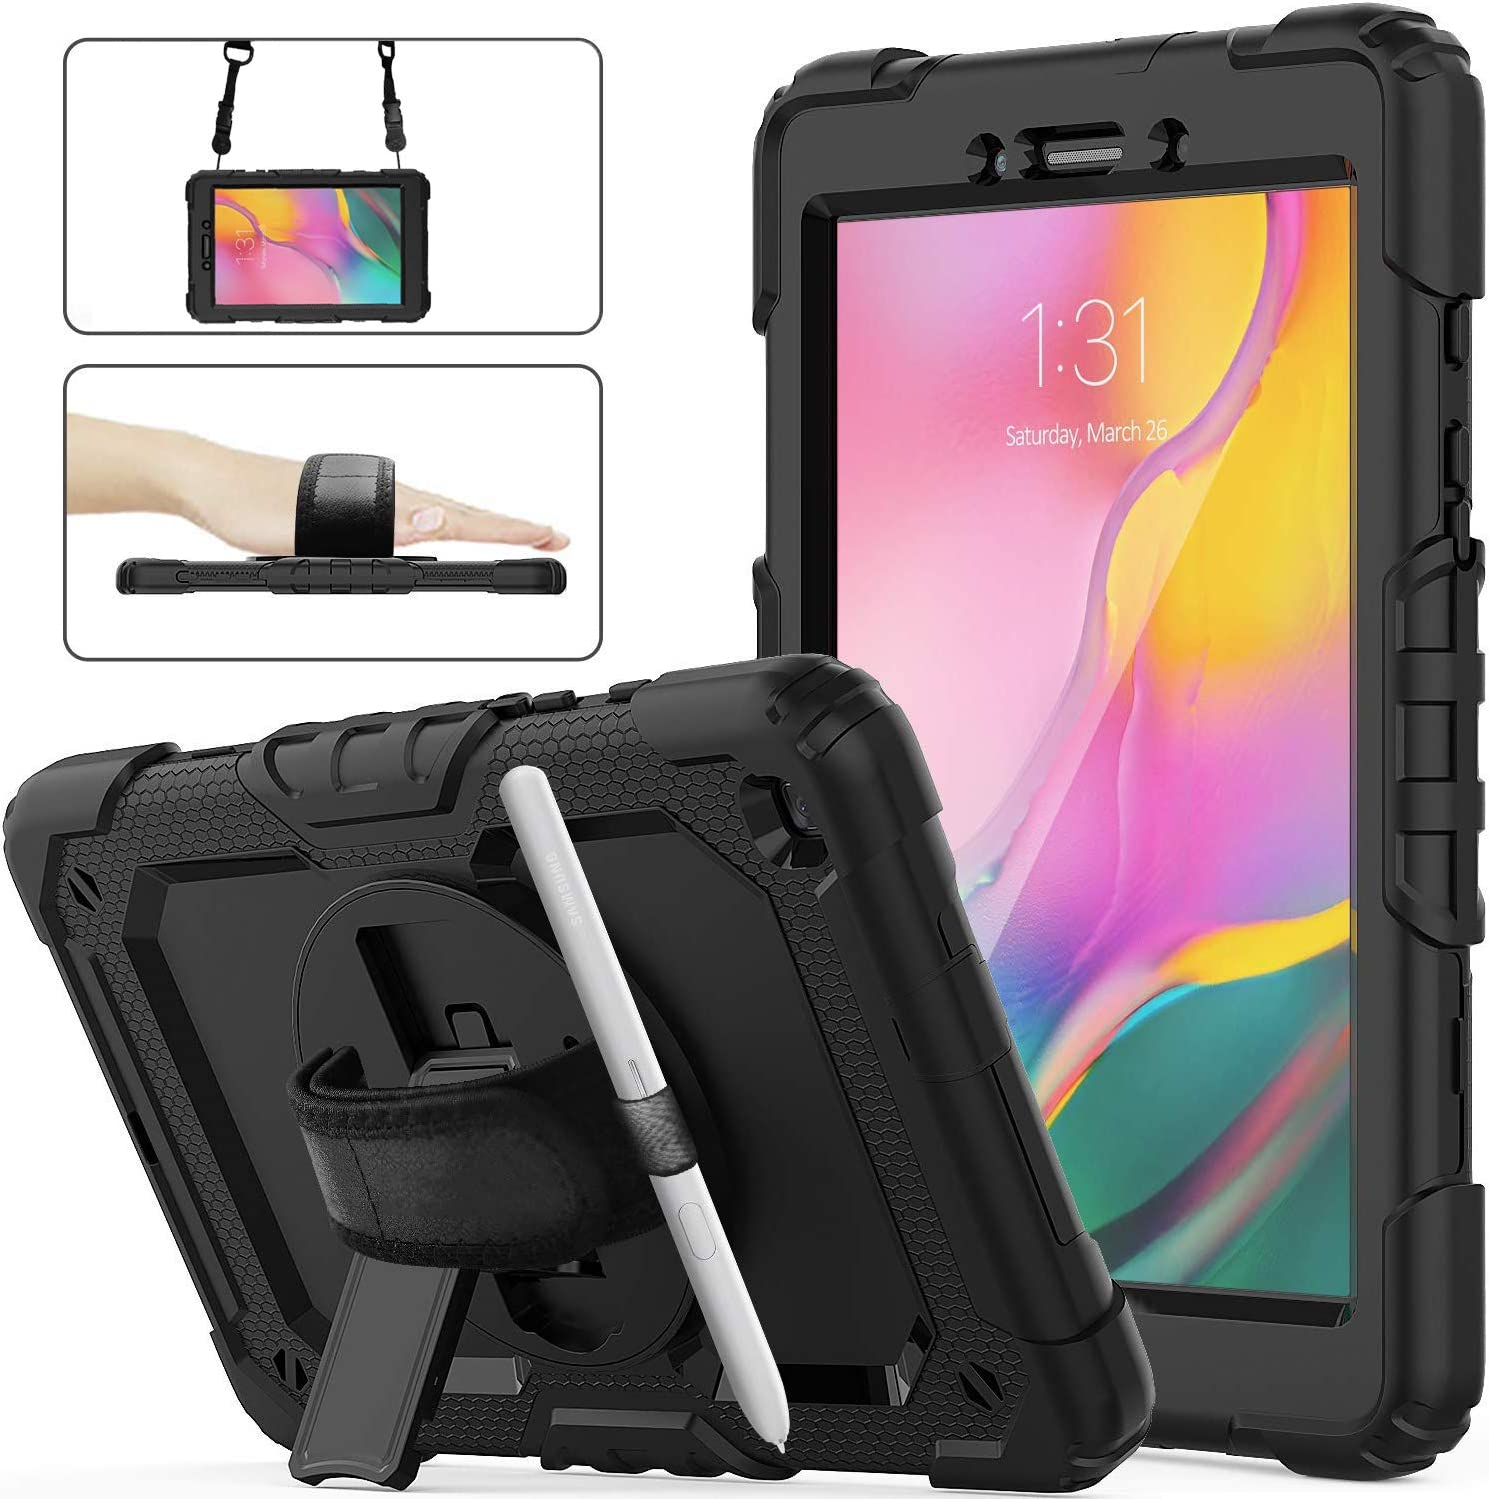 Galaxy Tab A 8.0 Case 2019 with Screen Protector, SM-T290/T295 Case, Herize Heavy Duty Rugged Shockproof Protective Case Cover with Pencil Holder/Hand Strap/Shoulder Strap for Samsung Tab A 8.0 Inch